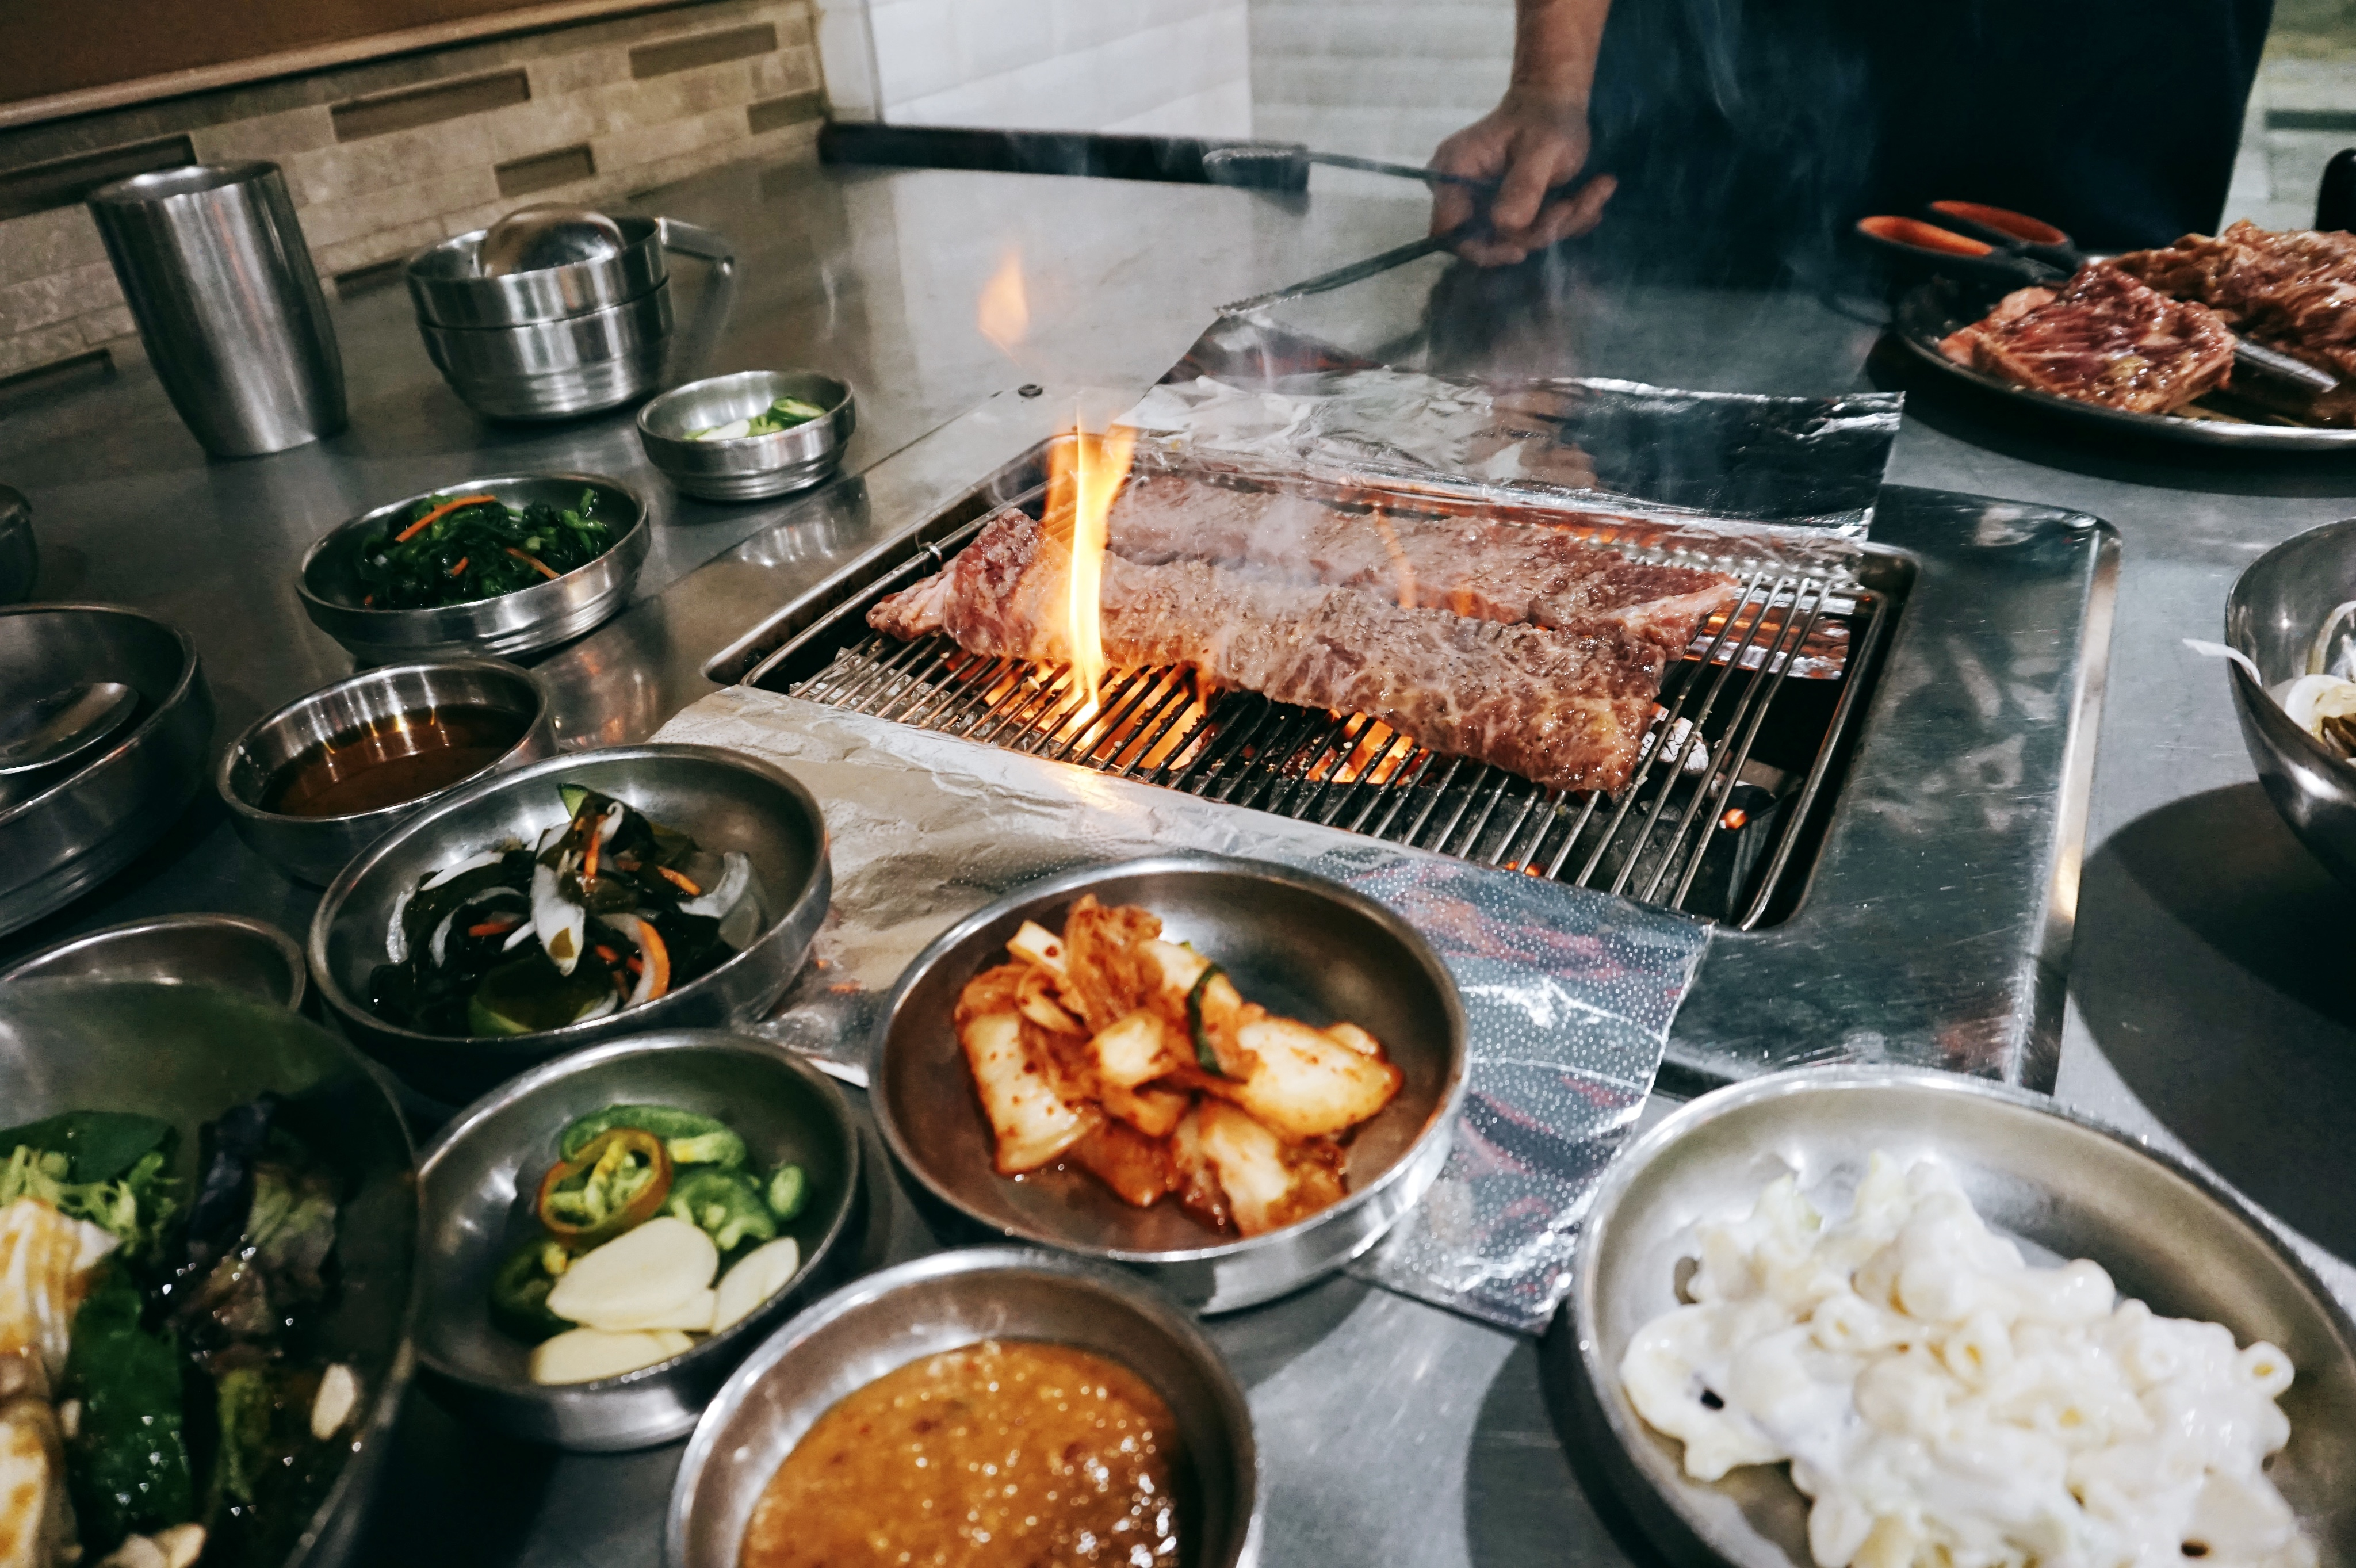 Korean Spring BBQ, the first wooden charcoal grill KBBQ restaurant to open in the Bay Area, lists over 60 dishes on its menu.